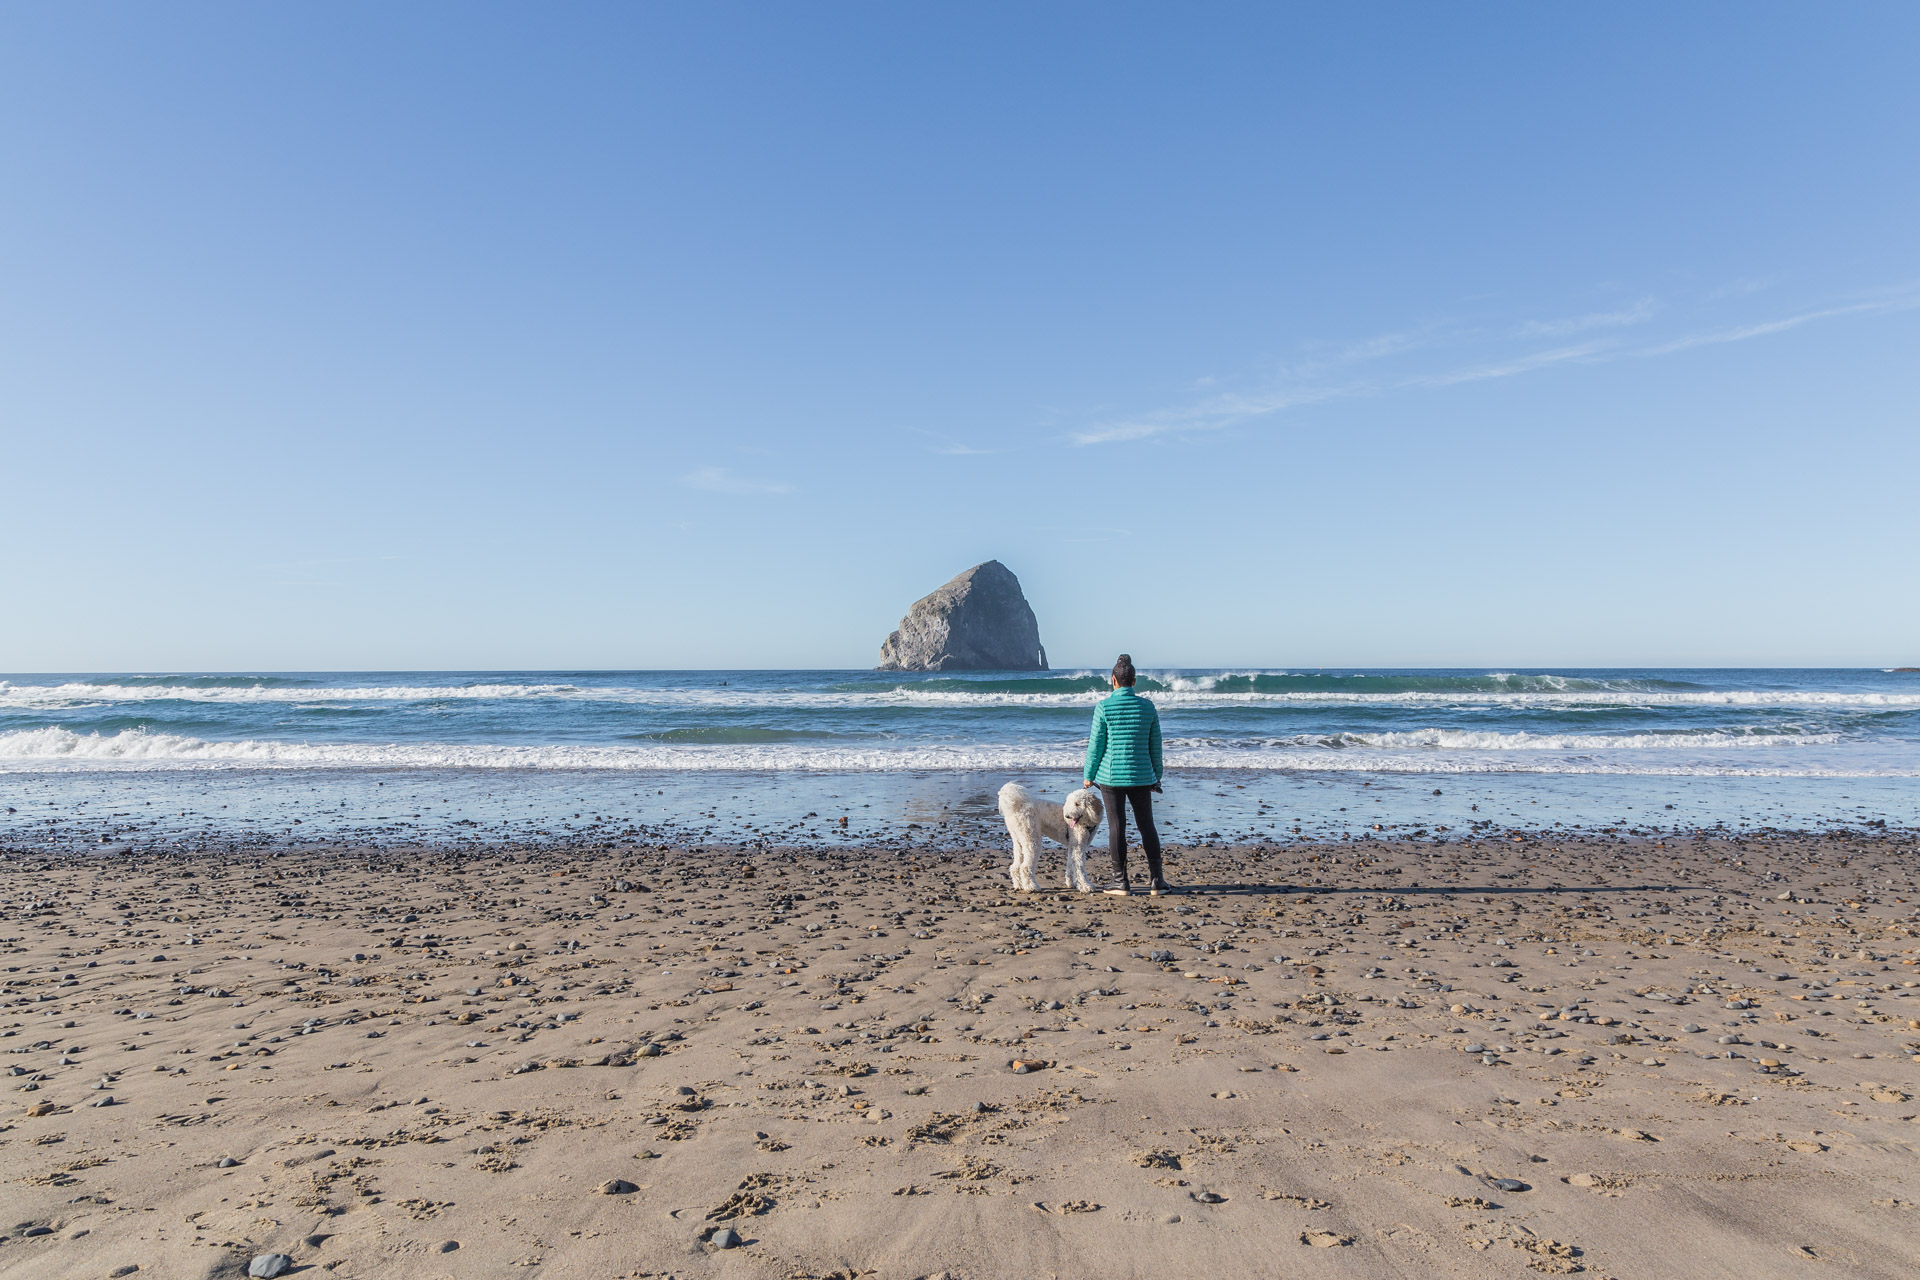 Cape Kiwanda State Natural Area: An Oregon Coast Beauty